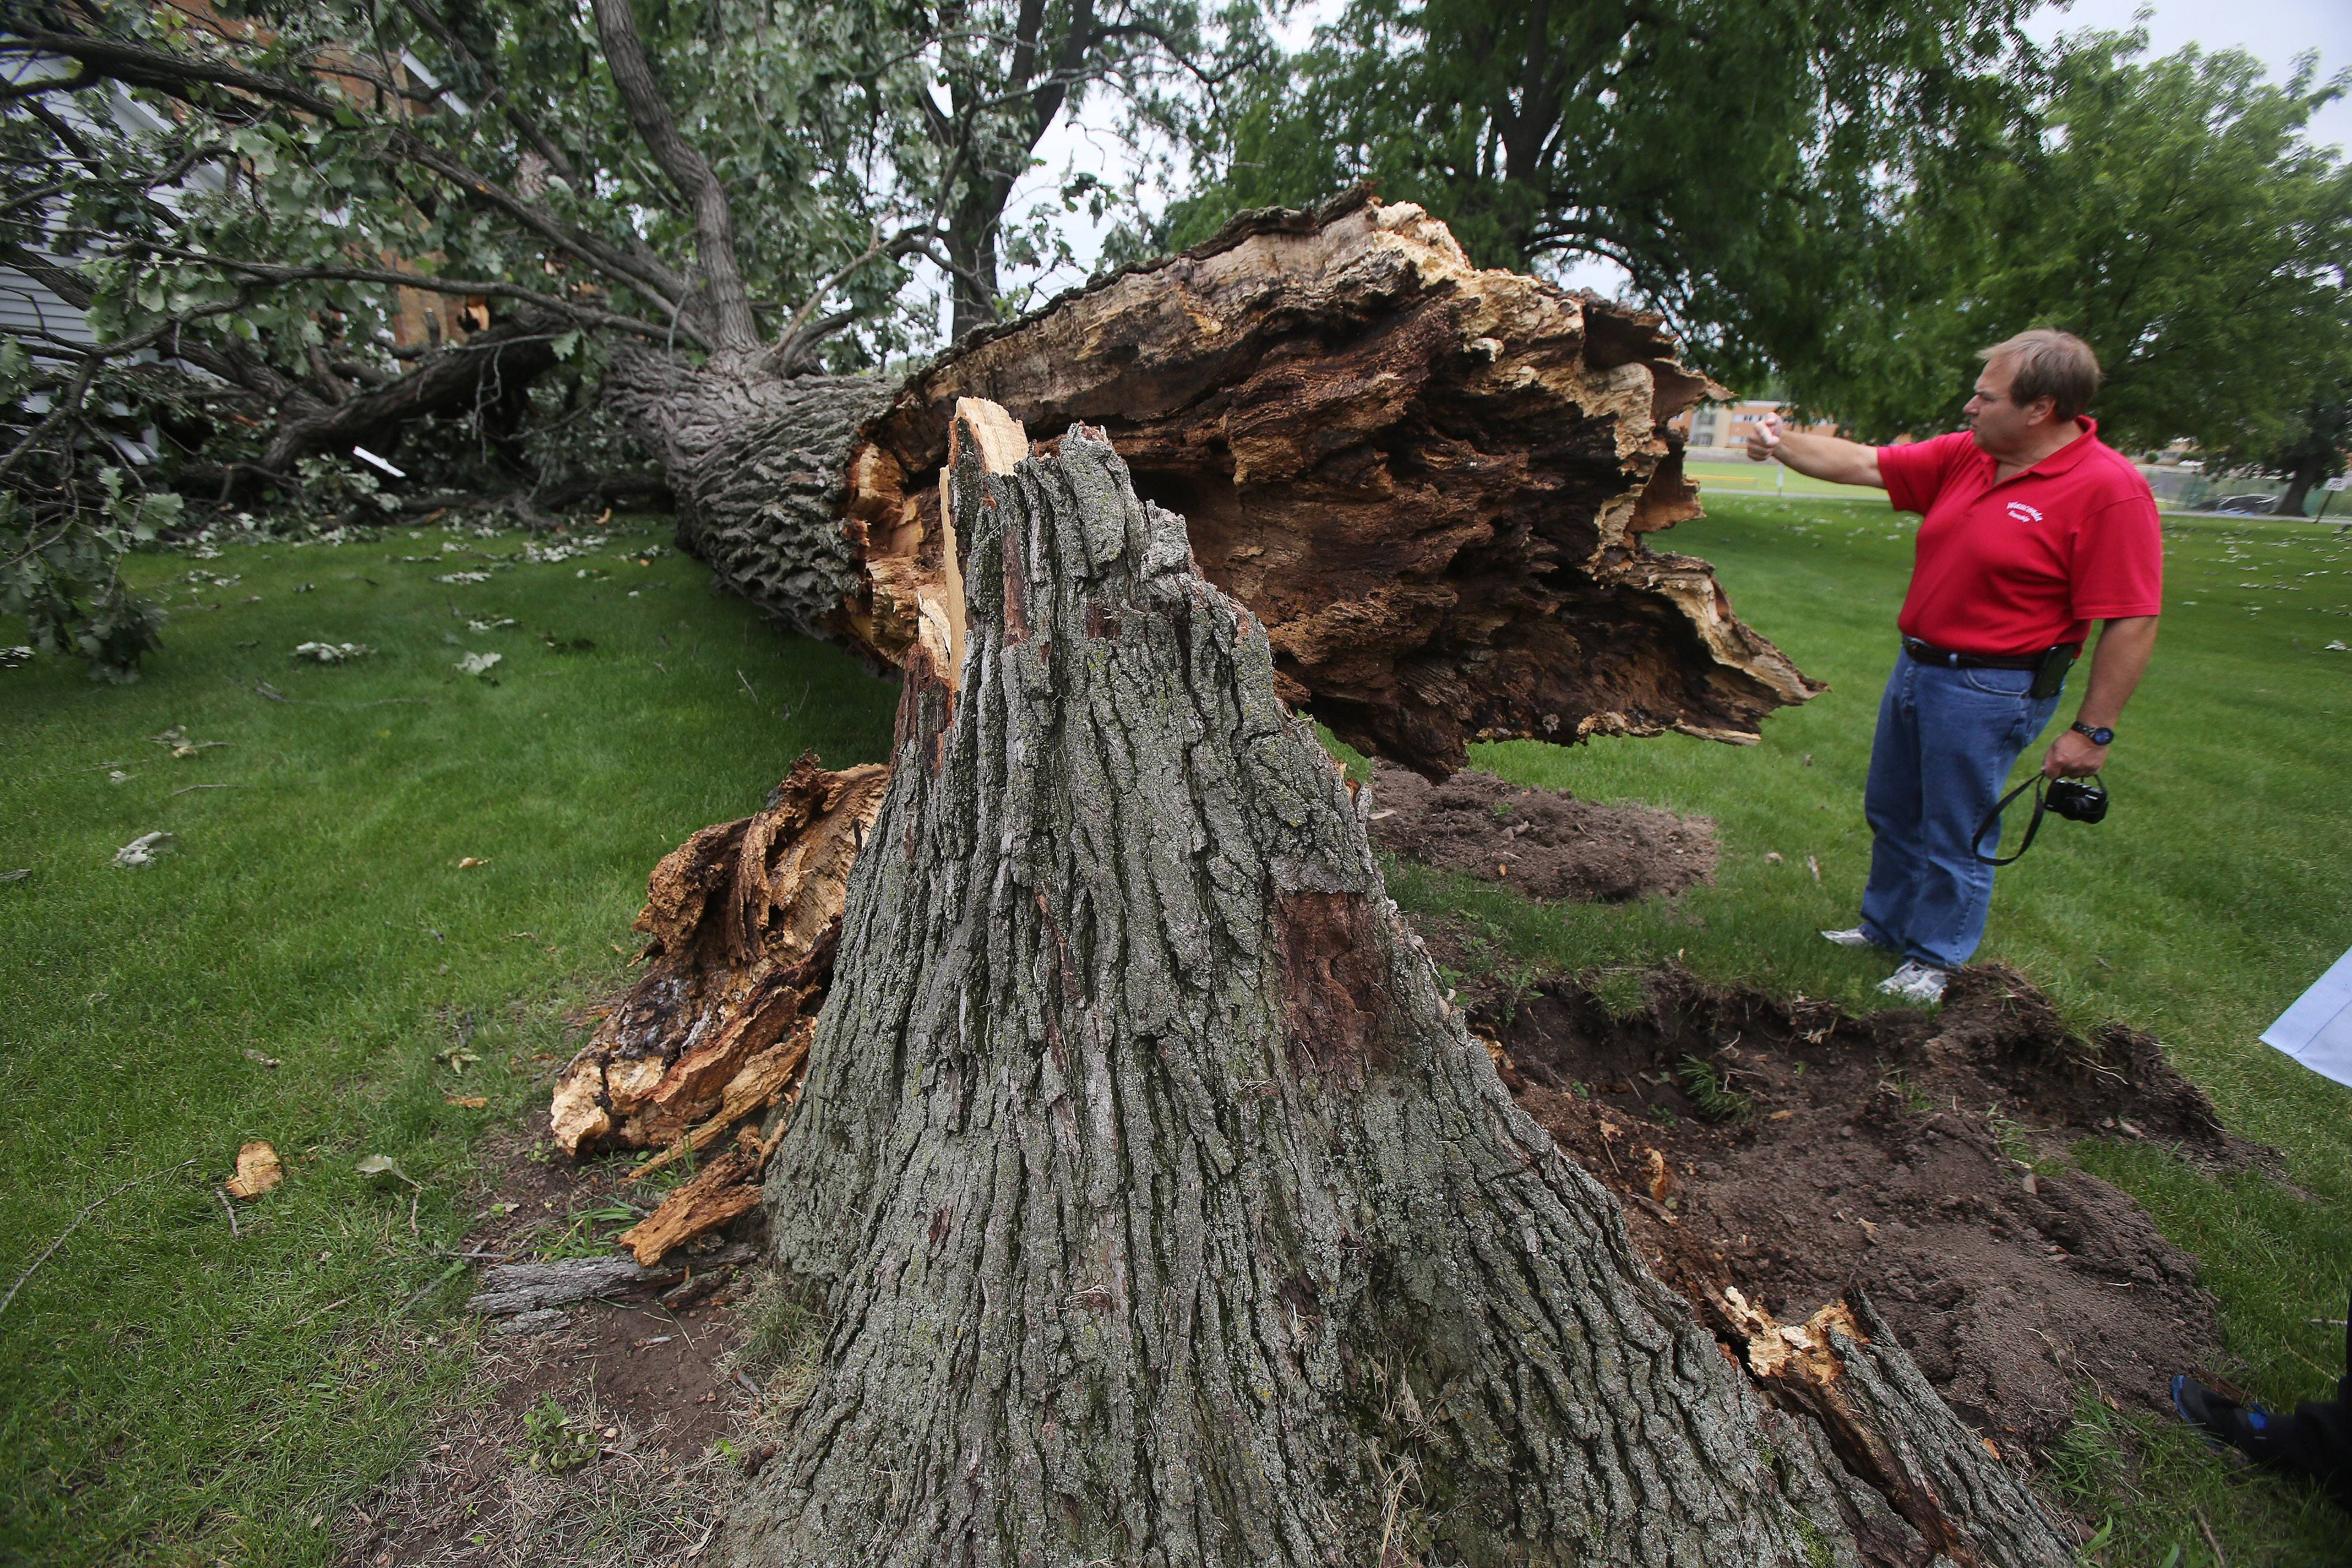 Wauconda Township Supervisor Glenn Swanson discusses the damag done by a fallen tree that hit the historic Cook House in Wauconda. A Saturday storm caused severe damage to trees around the town.